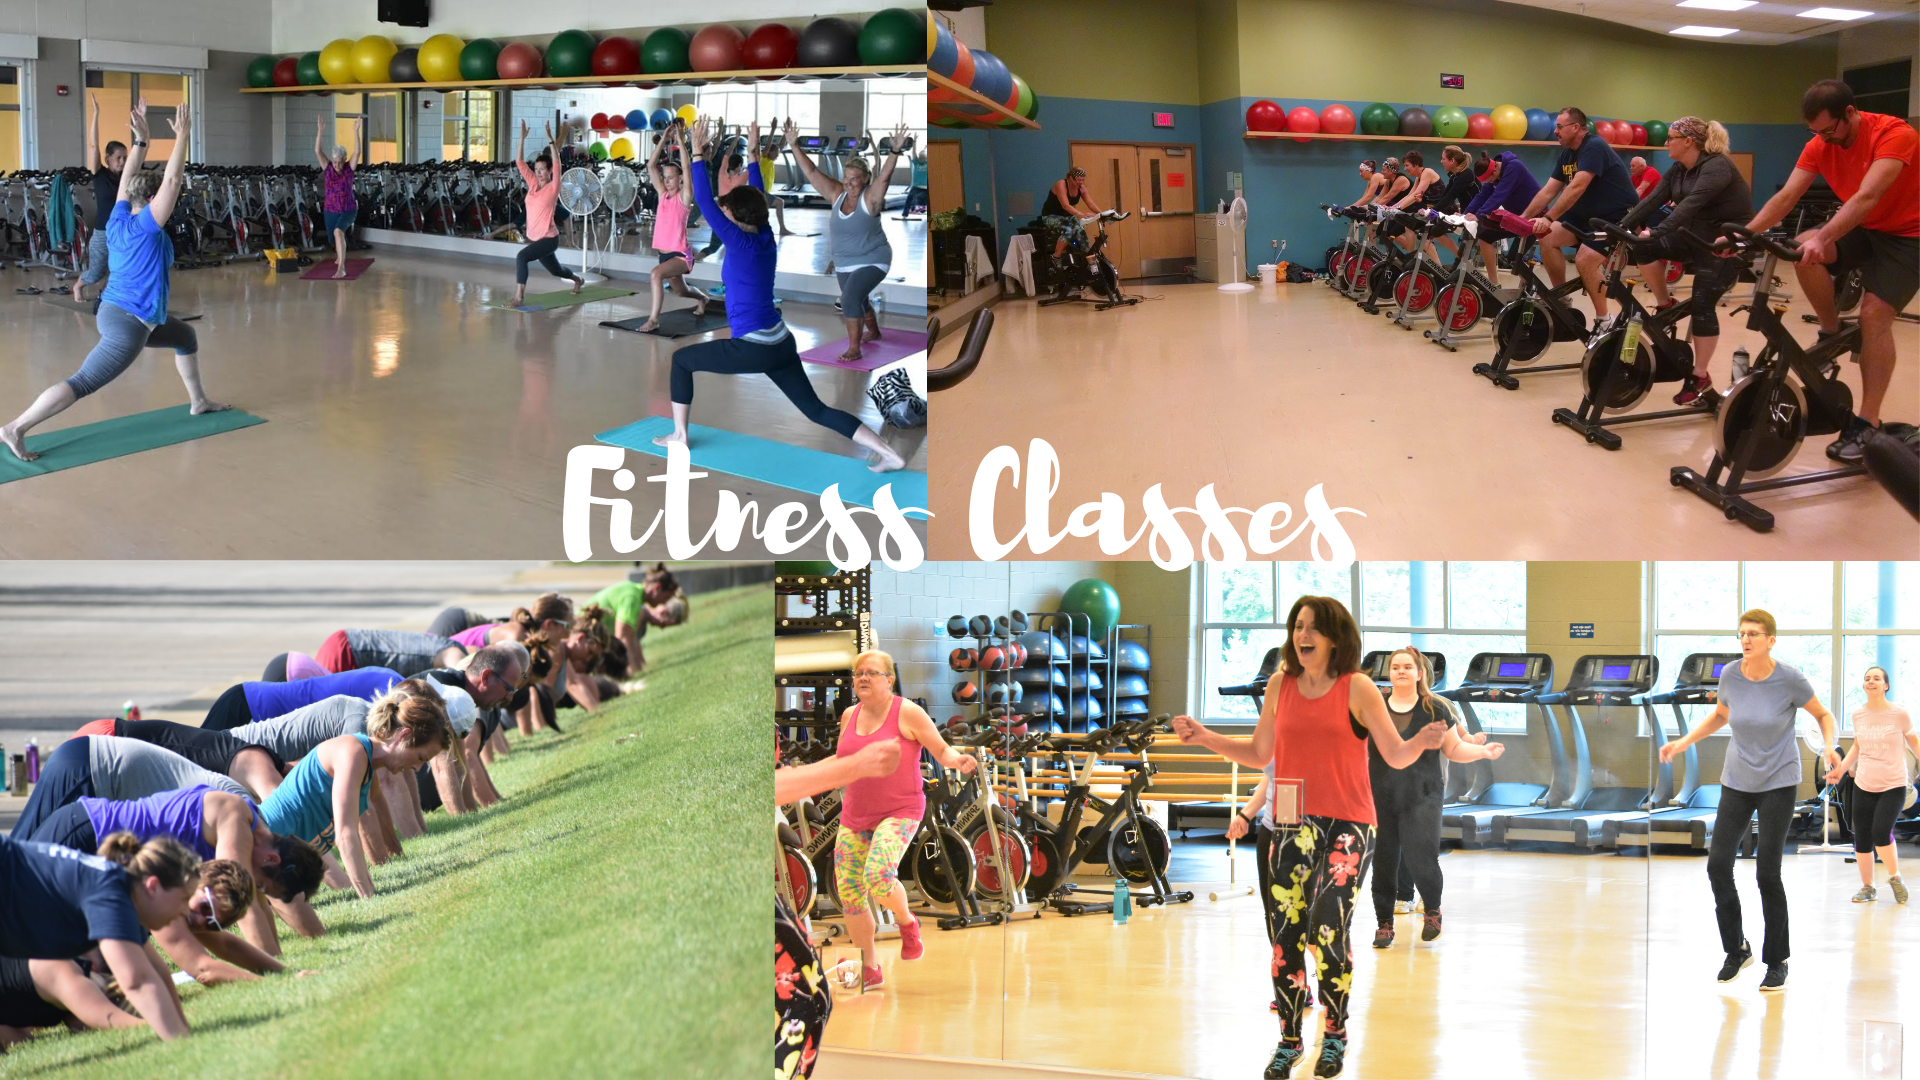 Adults in spin class, zumba and yoga